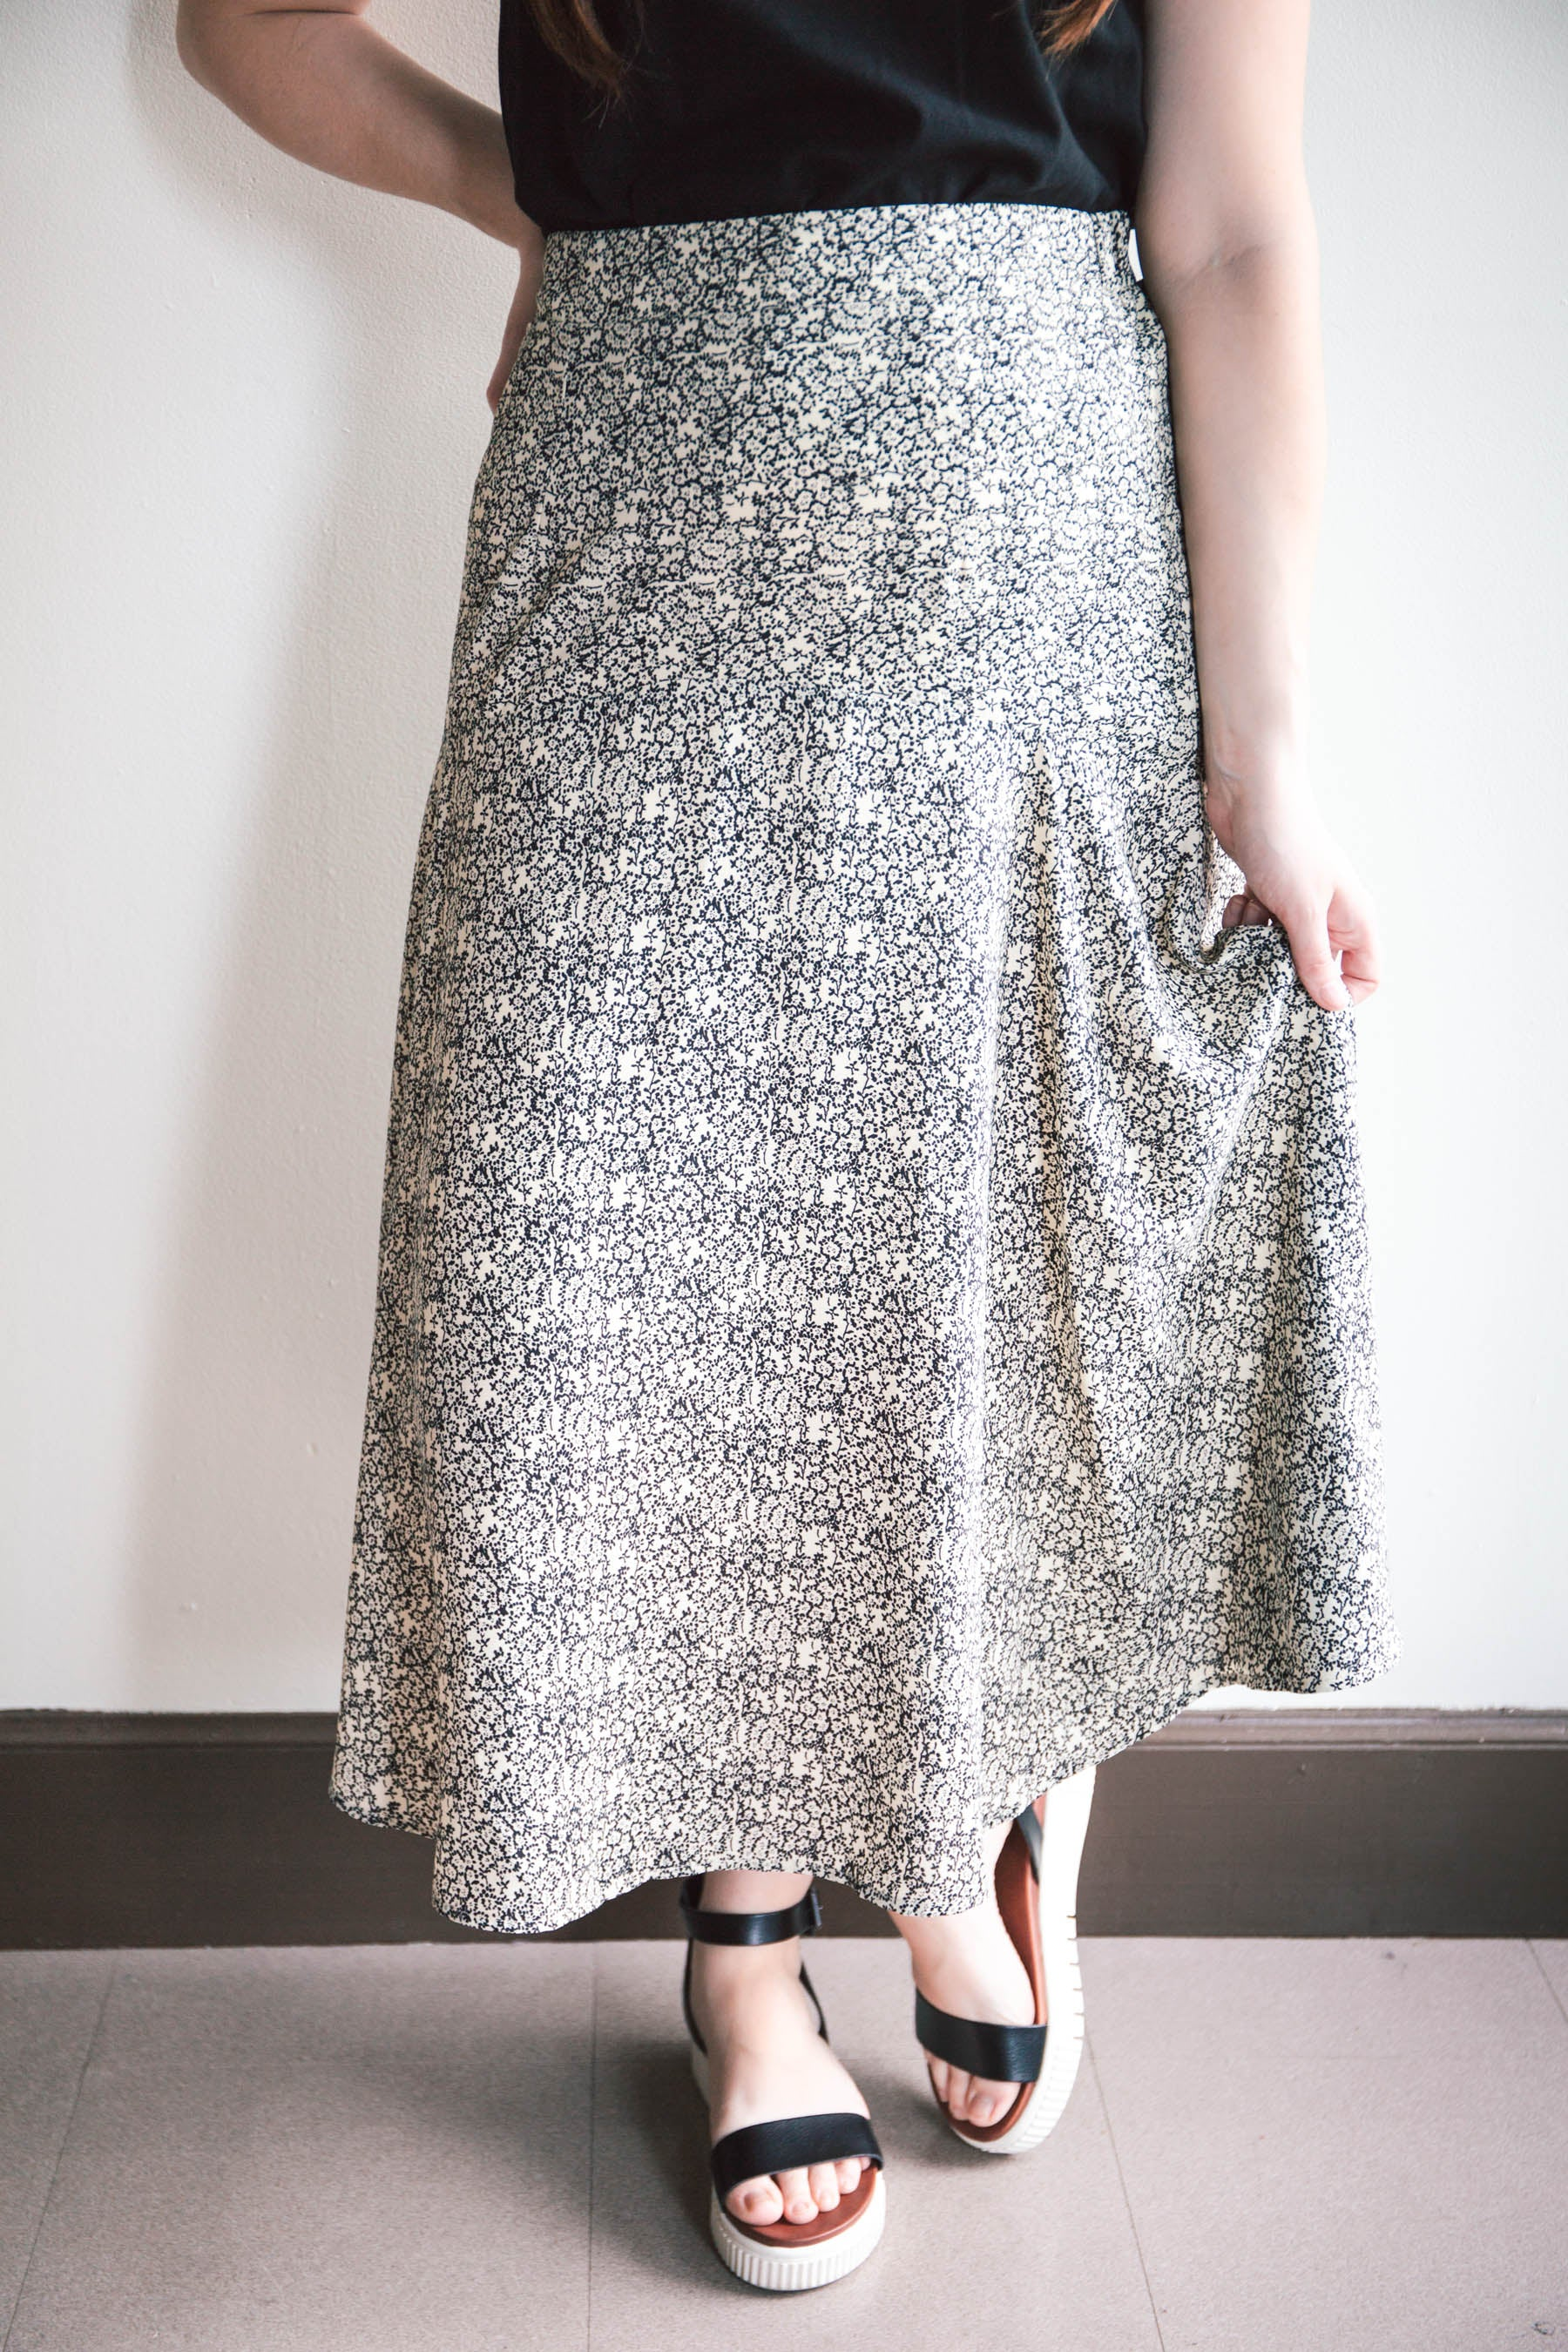 Alexa Floral Skirt (FINAL SALE)